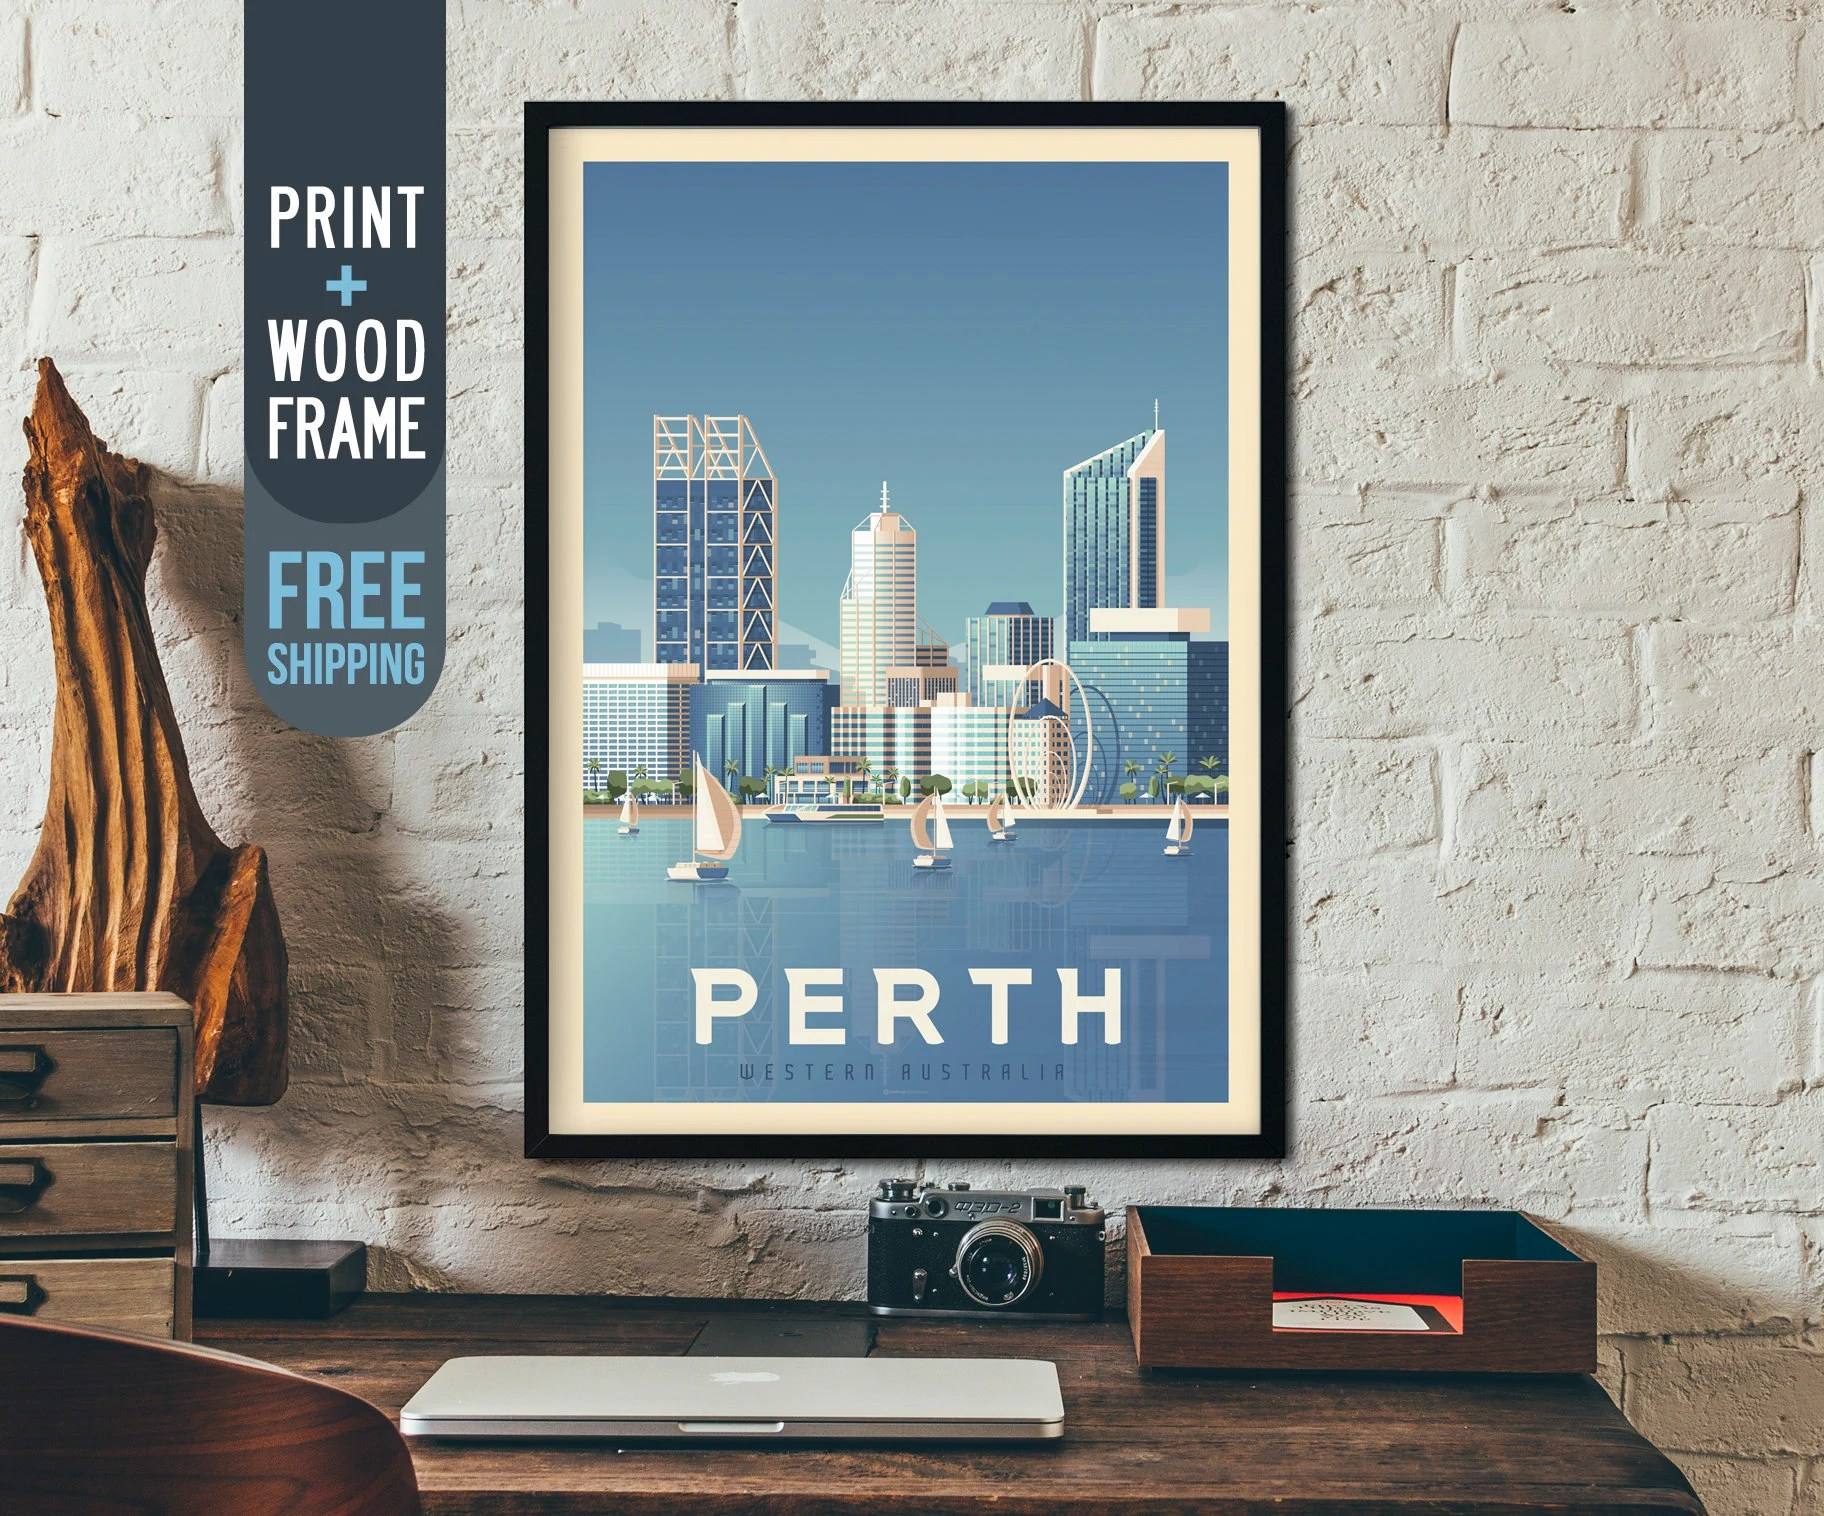 Wall Prints For Living Room Australia Perth Australia Vintage Travel Poster Perth Framed Poster Perth